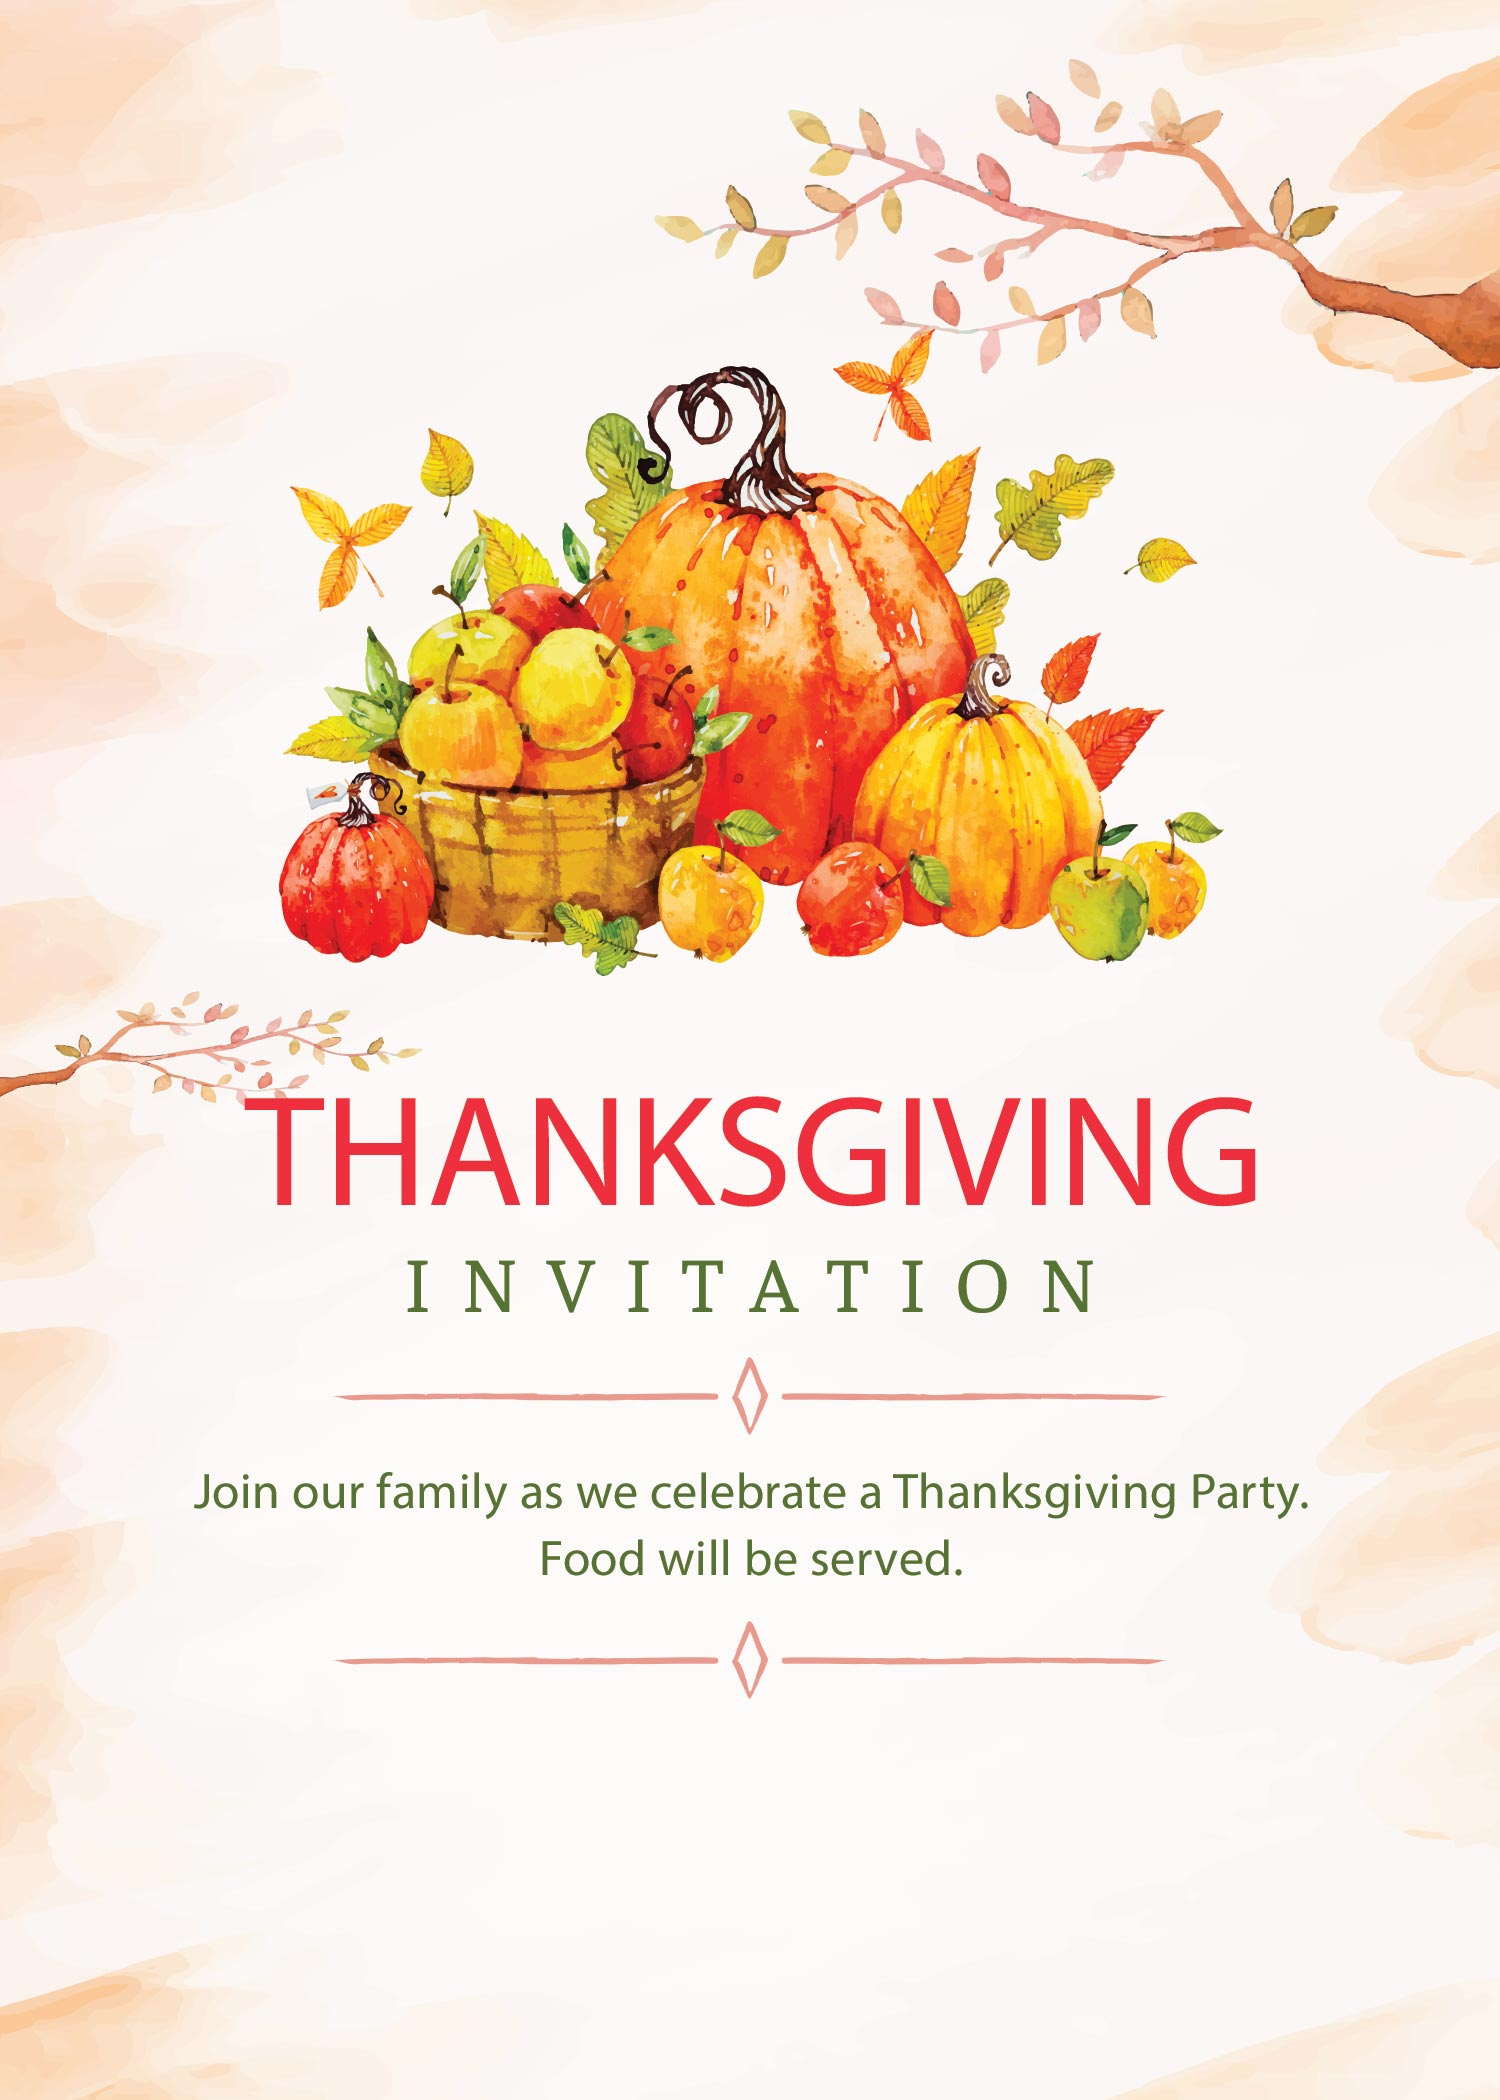 image relating to Printable Thanksgiving Invitations referred to as Cost-free Printable Thanksgiving Invites: Editable or Print